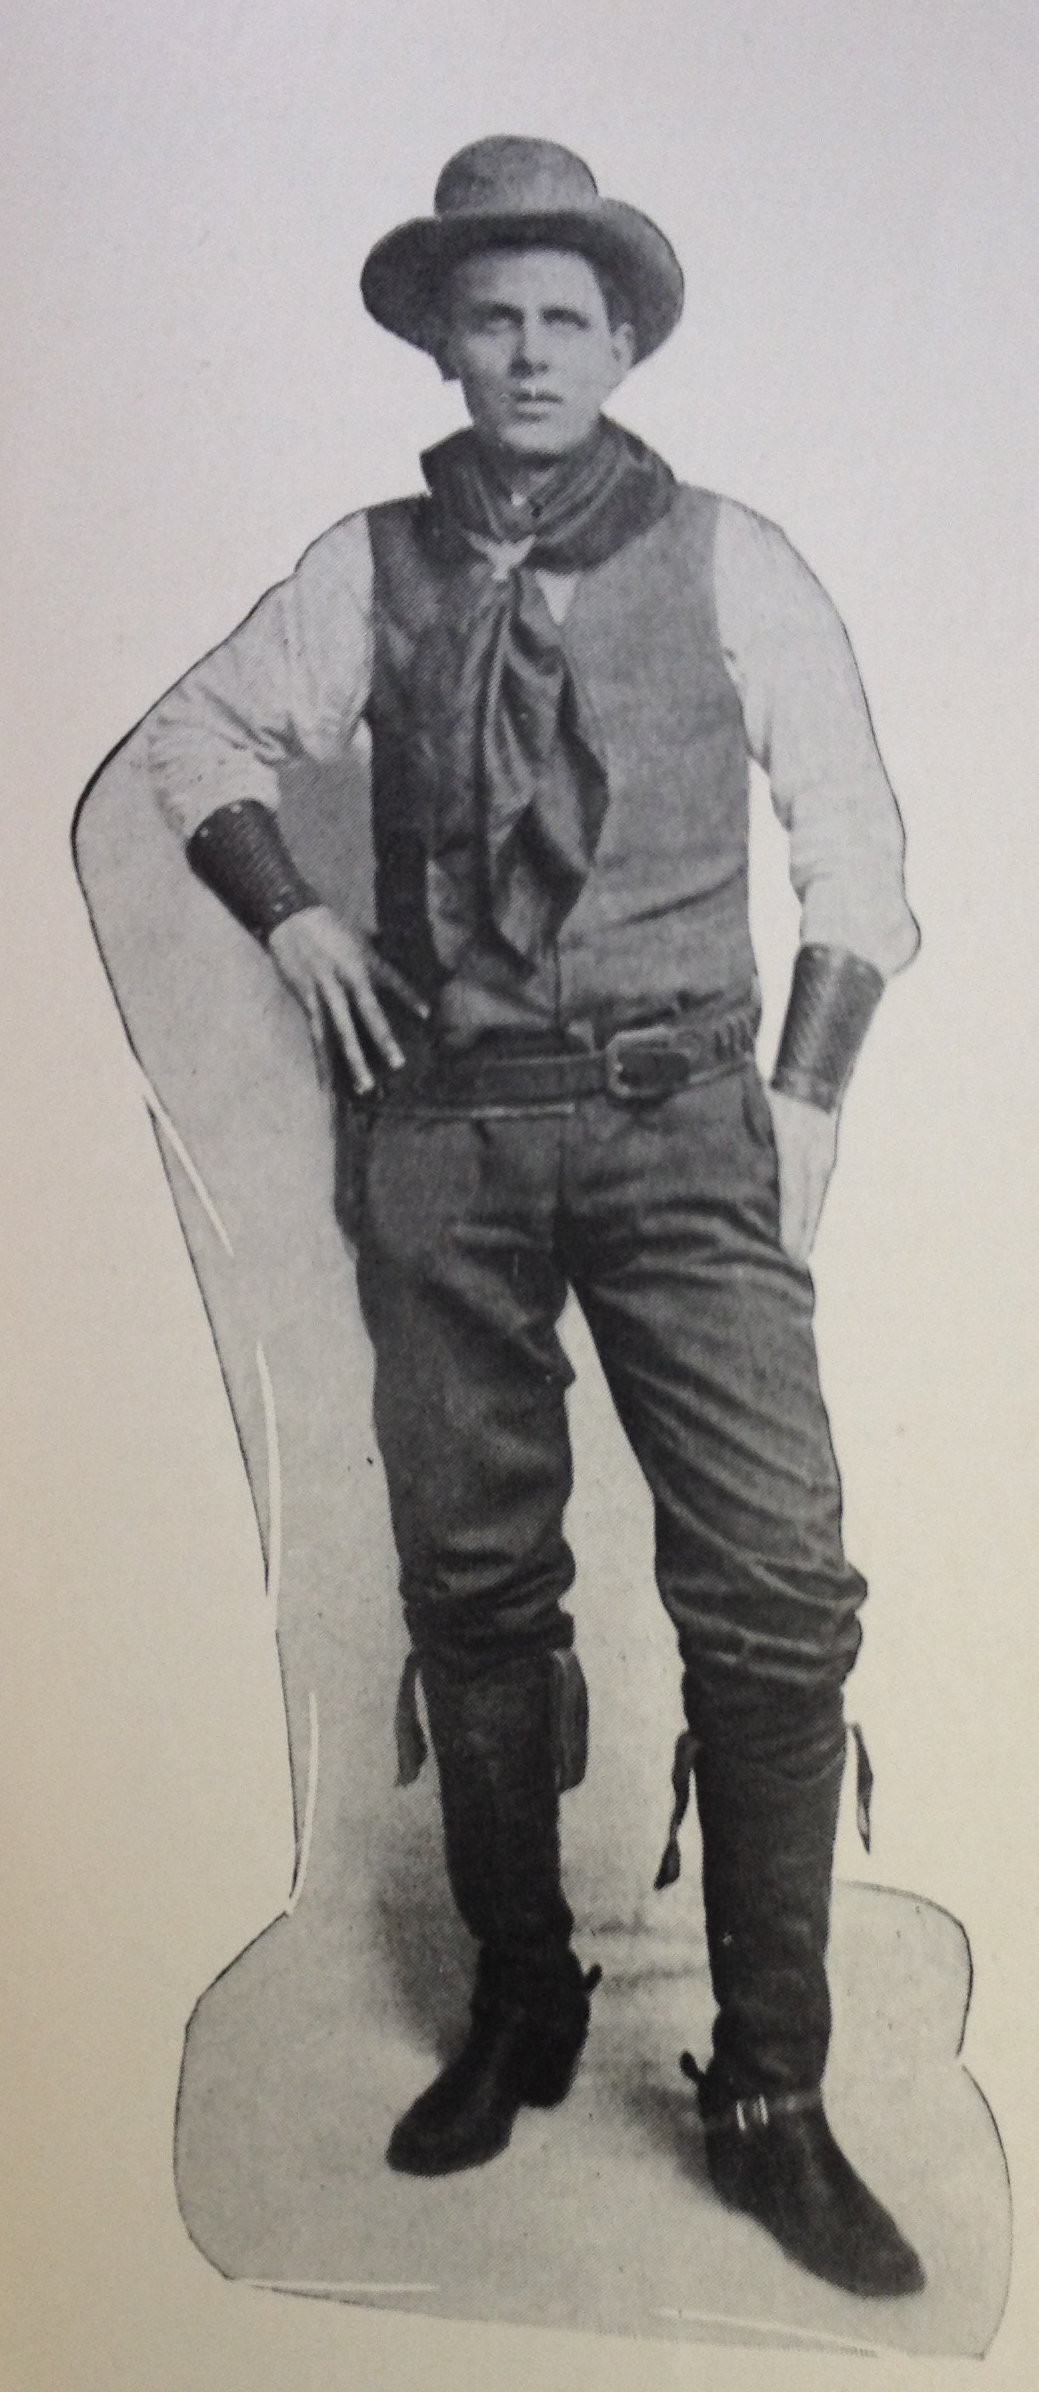 M. Raymond Harrington in his exploring outfit